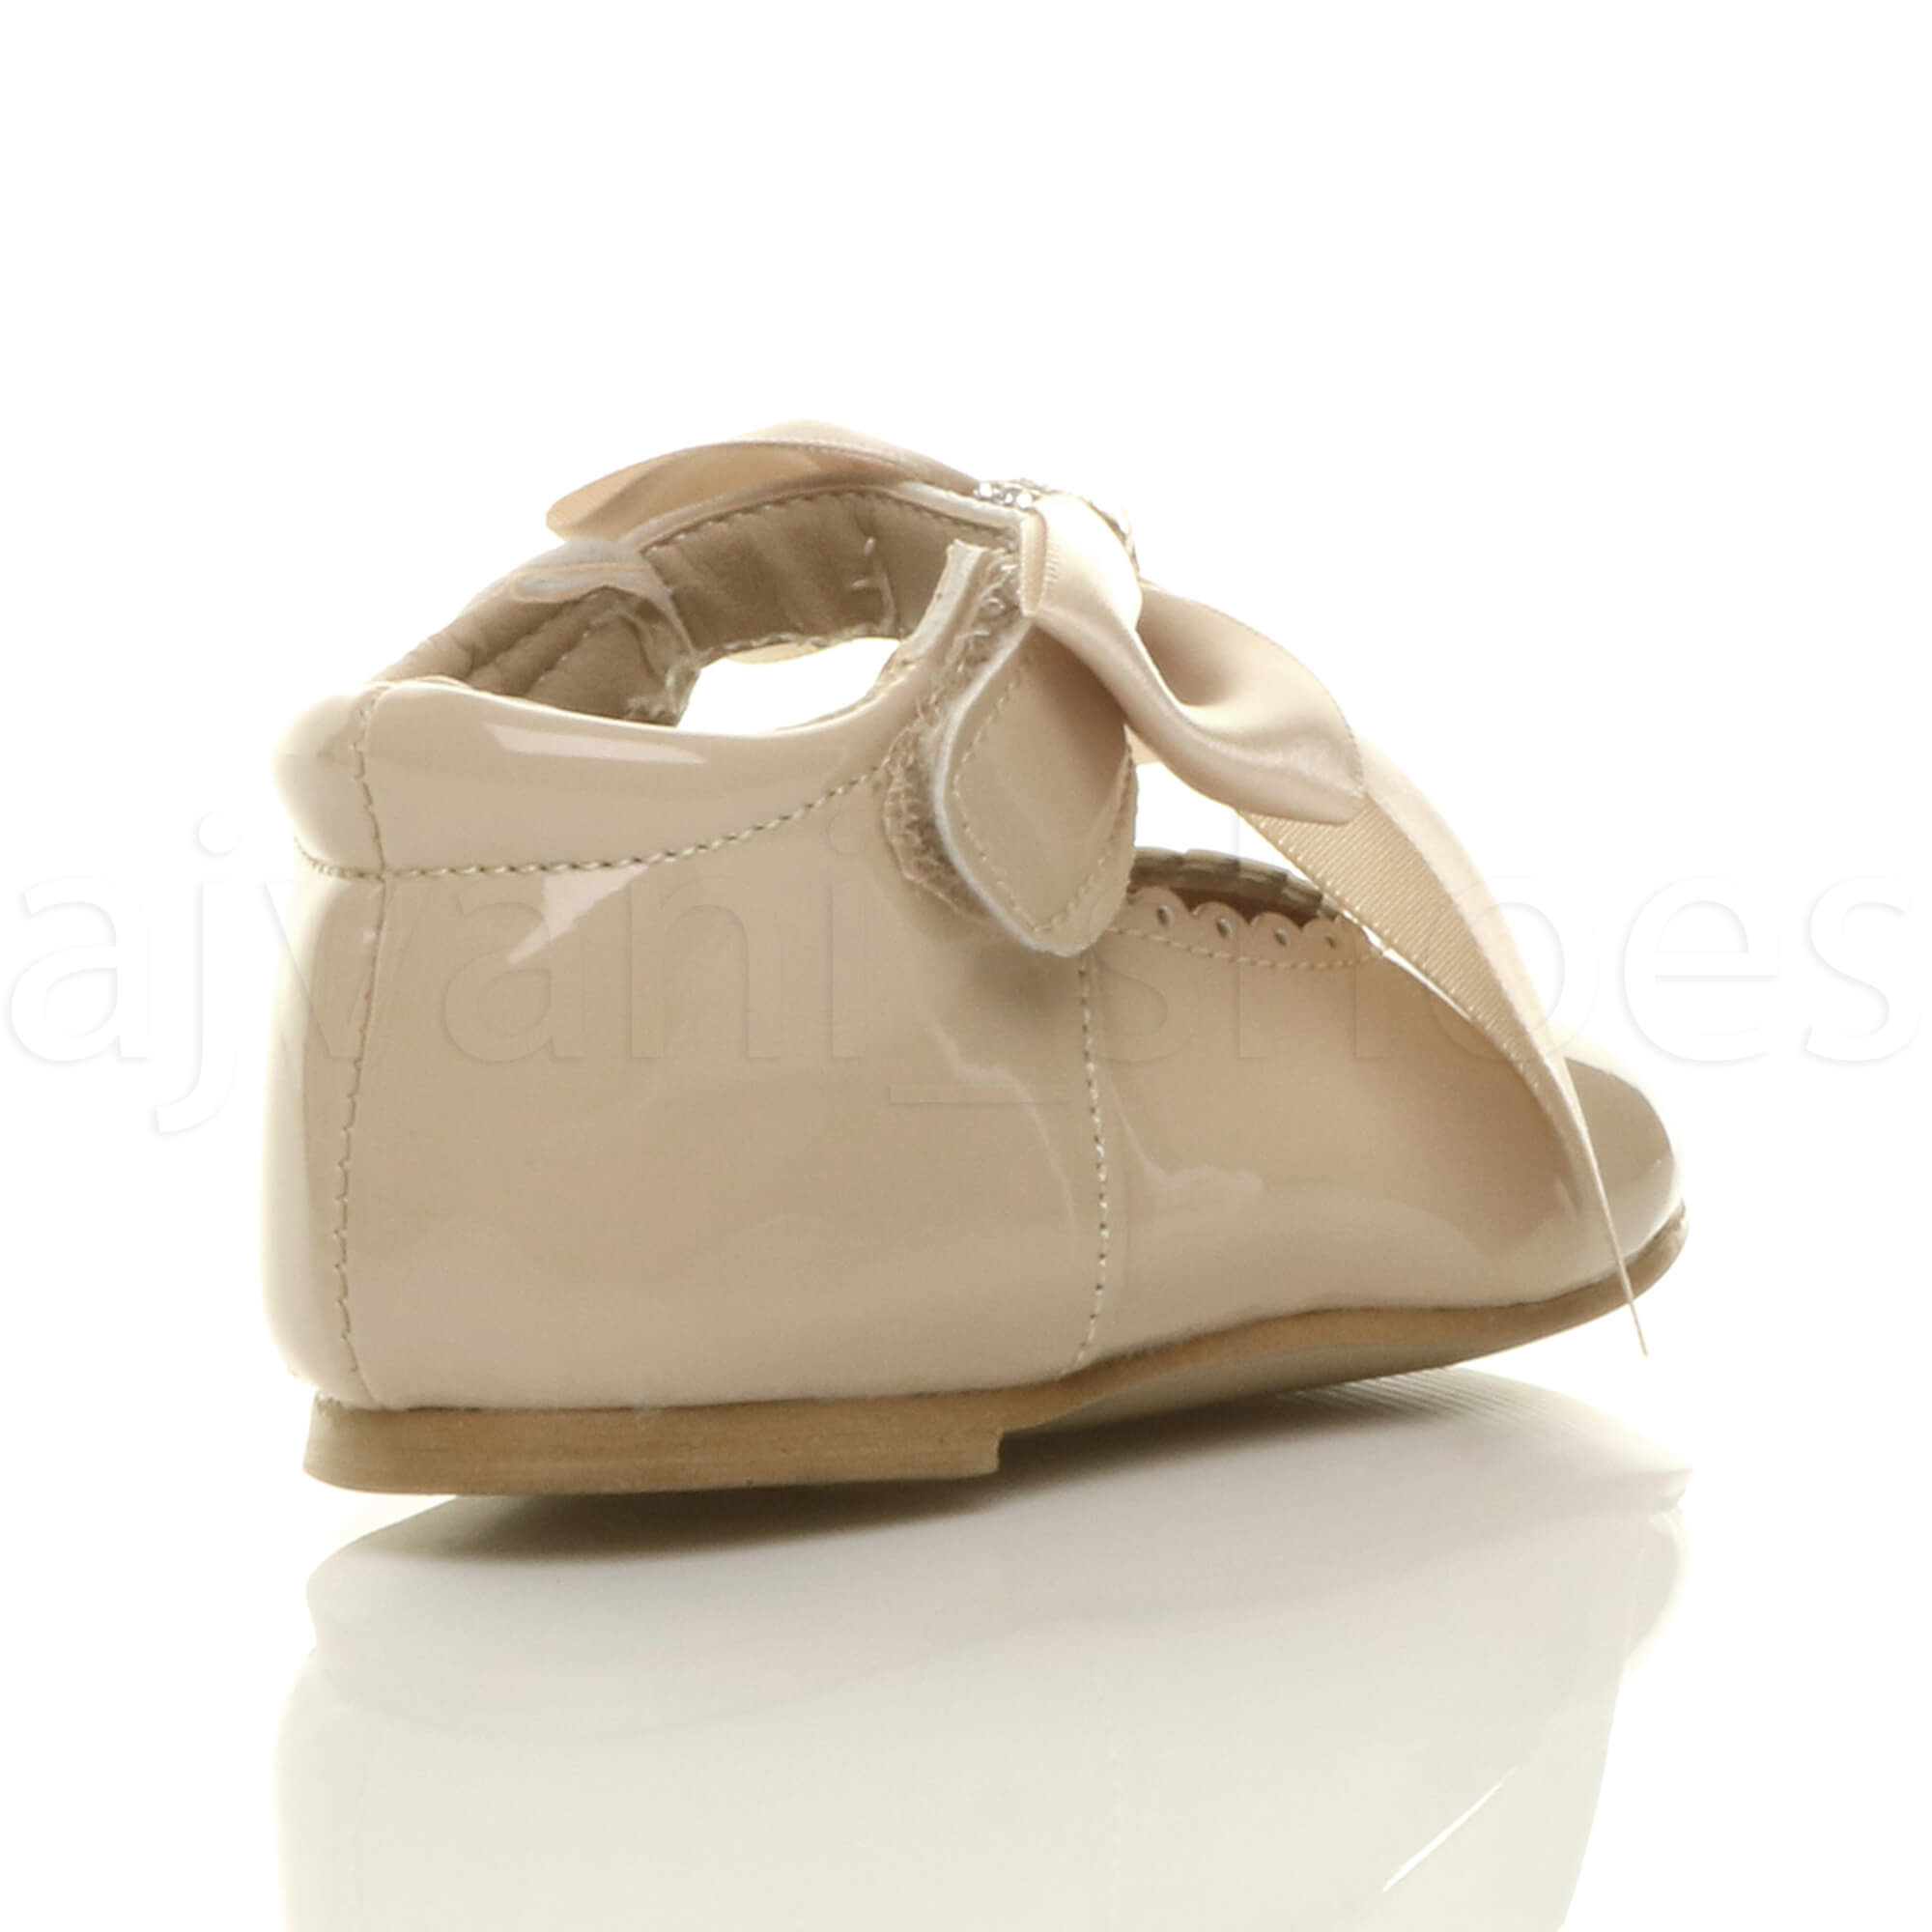 GIRLS INFANTS CHILDRENS RIBBON BOW SCALLOPED BRIDESMAID PARTY MARY JANE SHOES